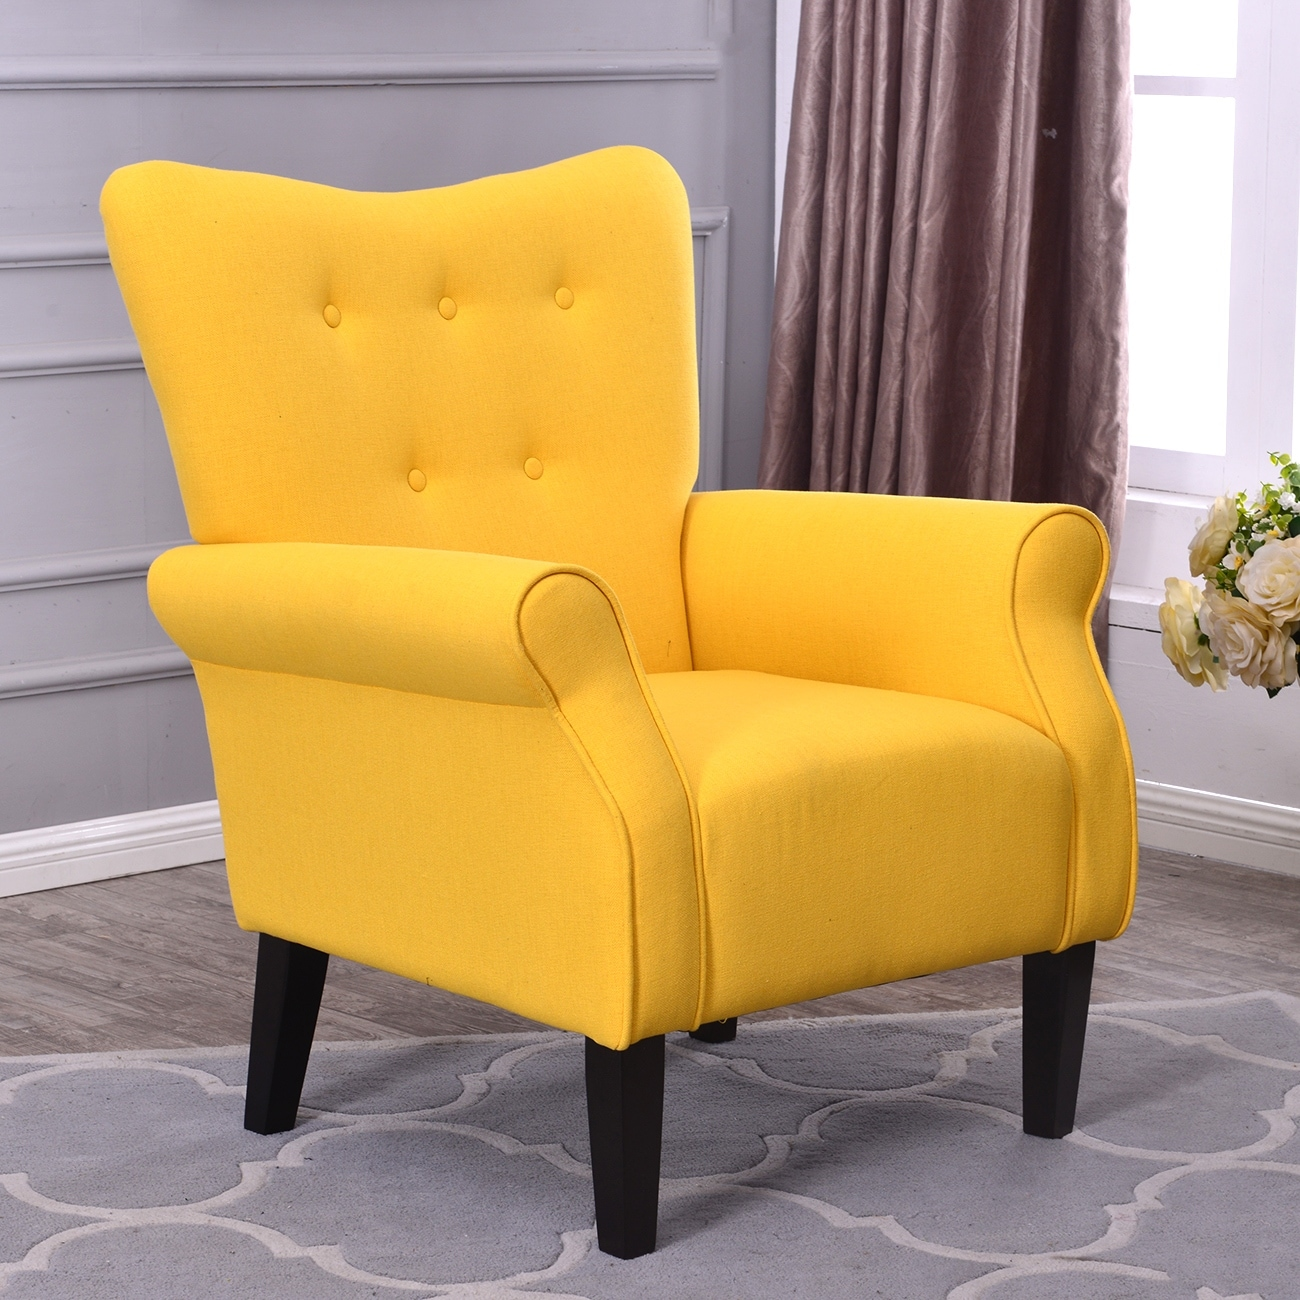 Charmant Shop Belleze Modern Linen Accent Chair Armrest Living Room W/ Wood Leg,  Citrine Yellow   Free Shipping Today   Overstock.com   18079763